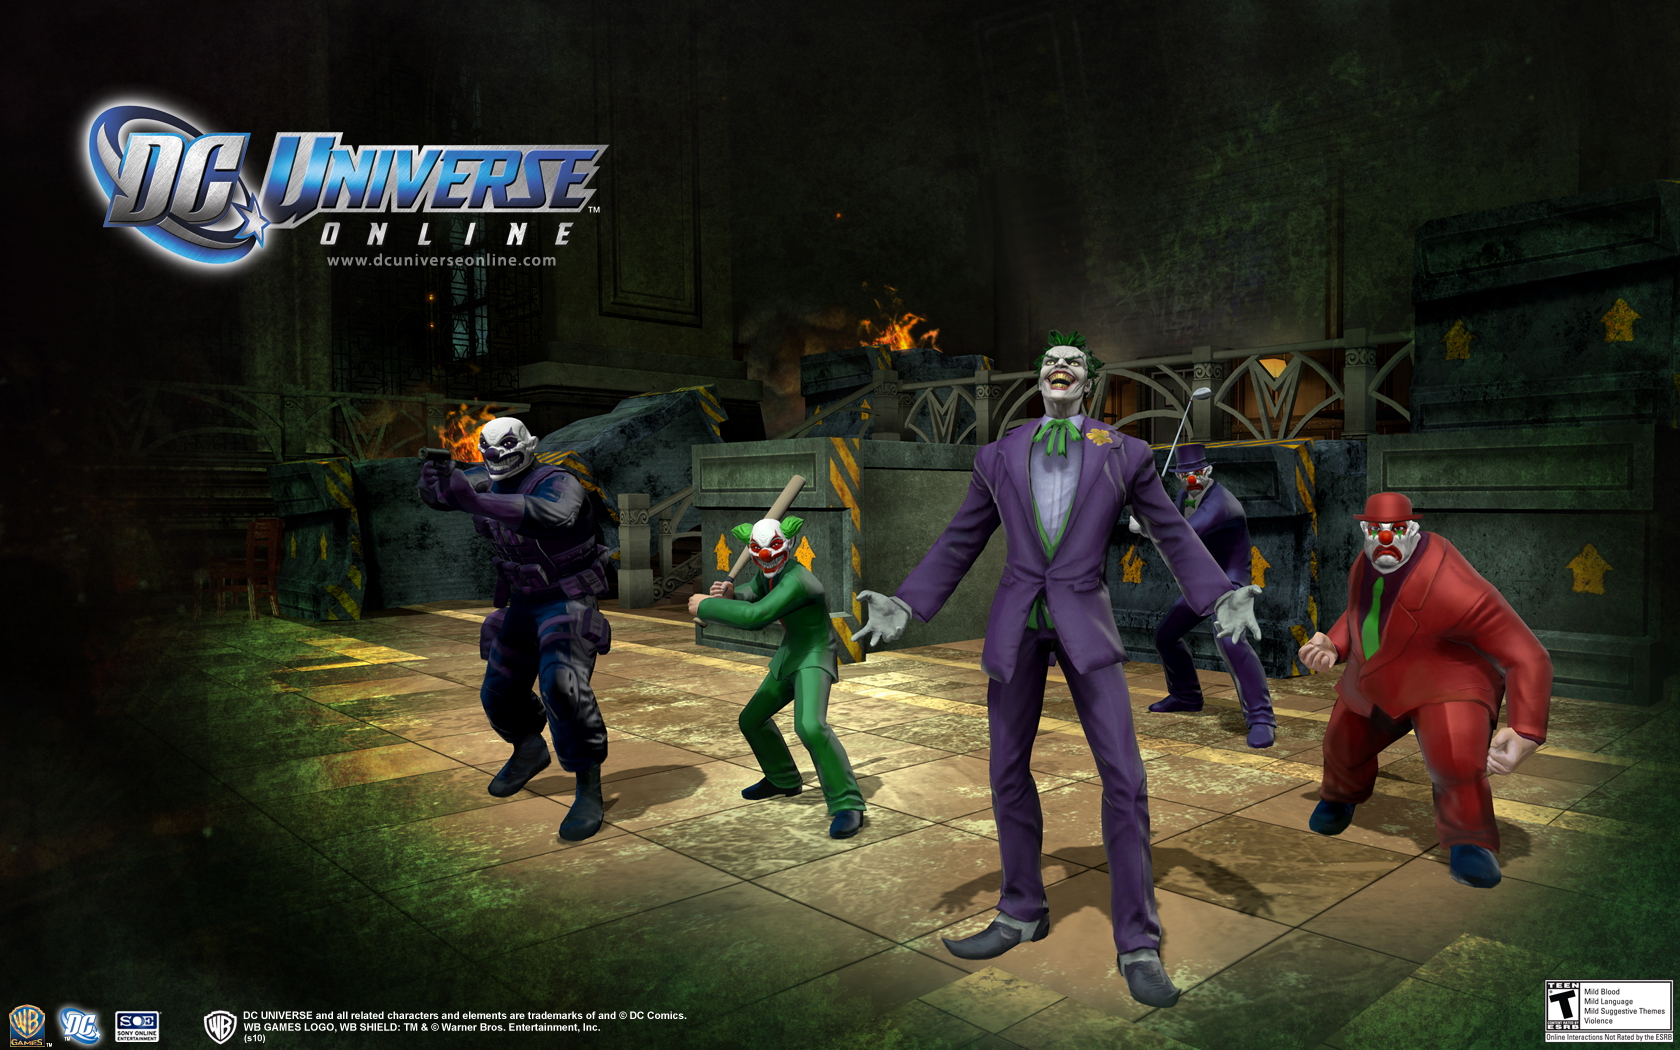 DC Universe players